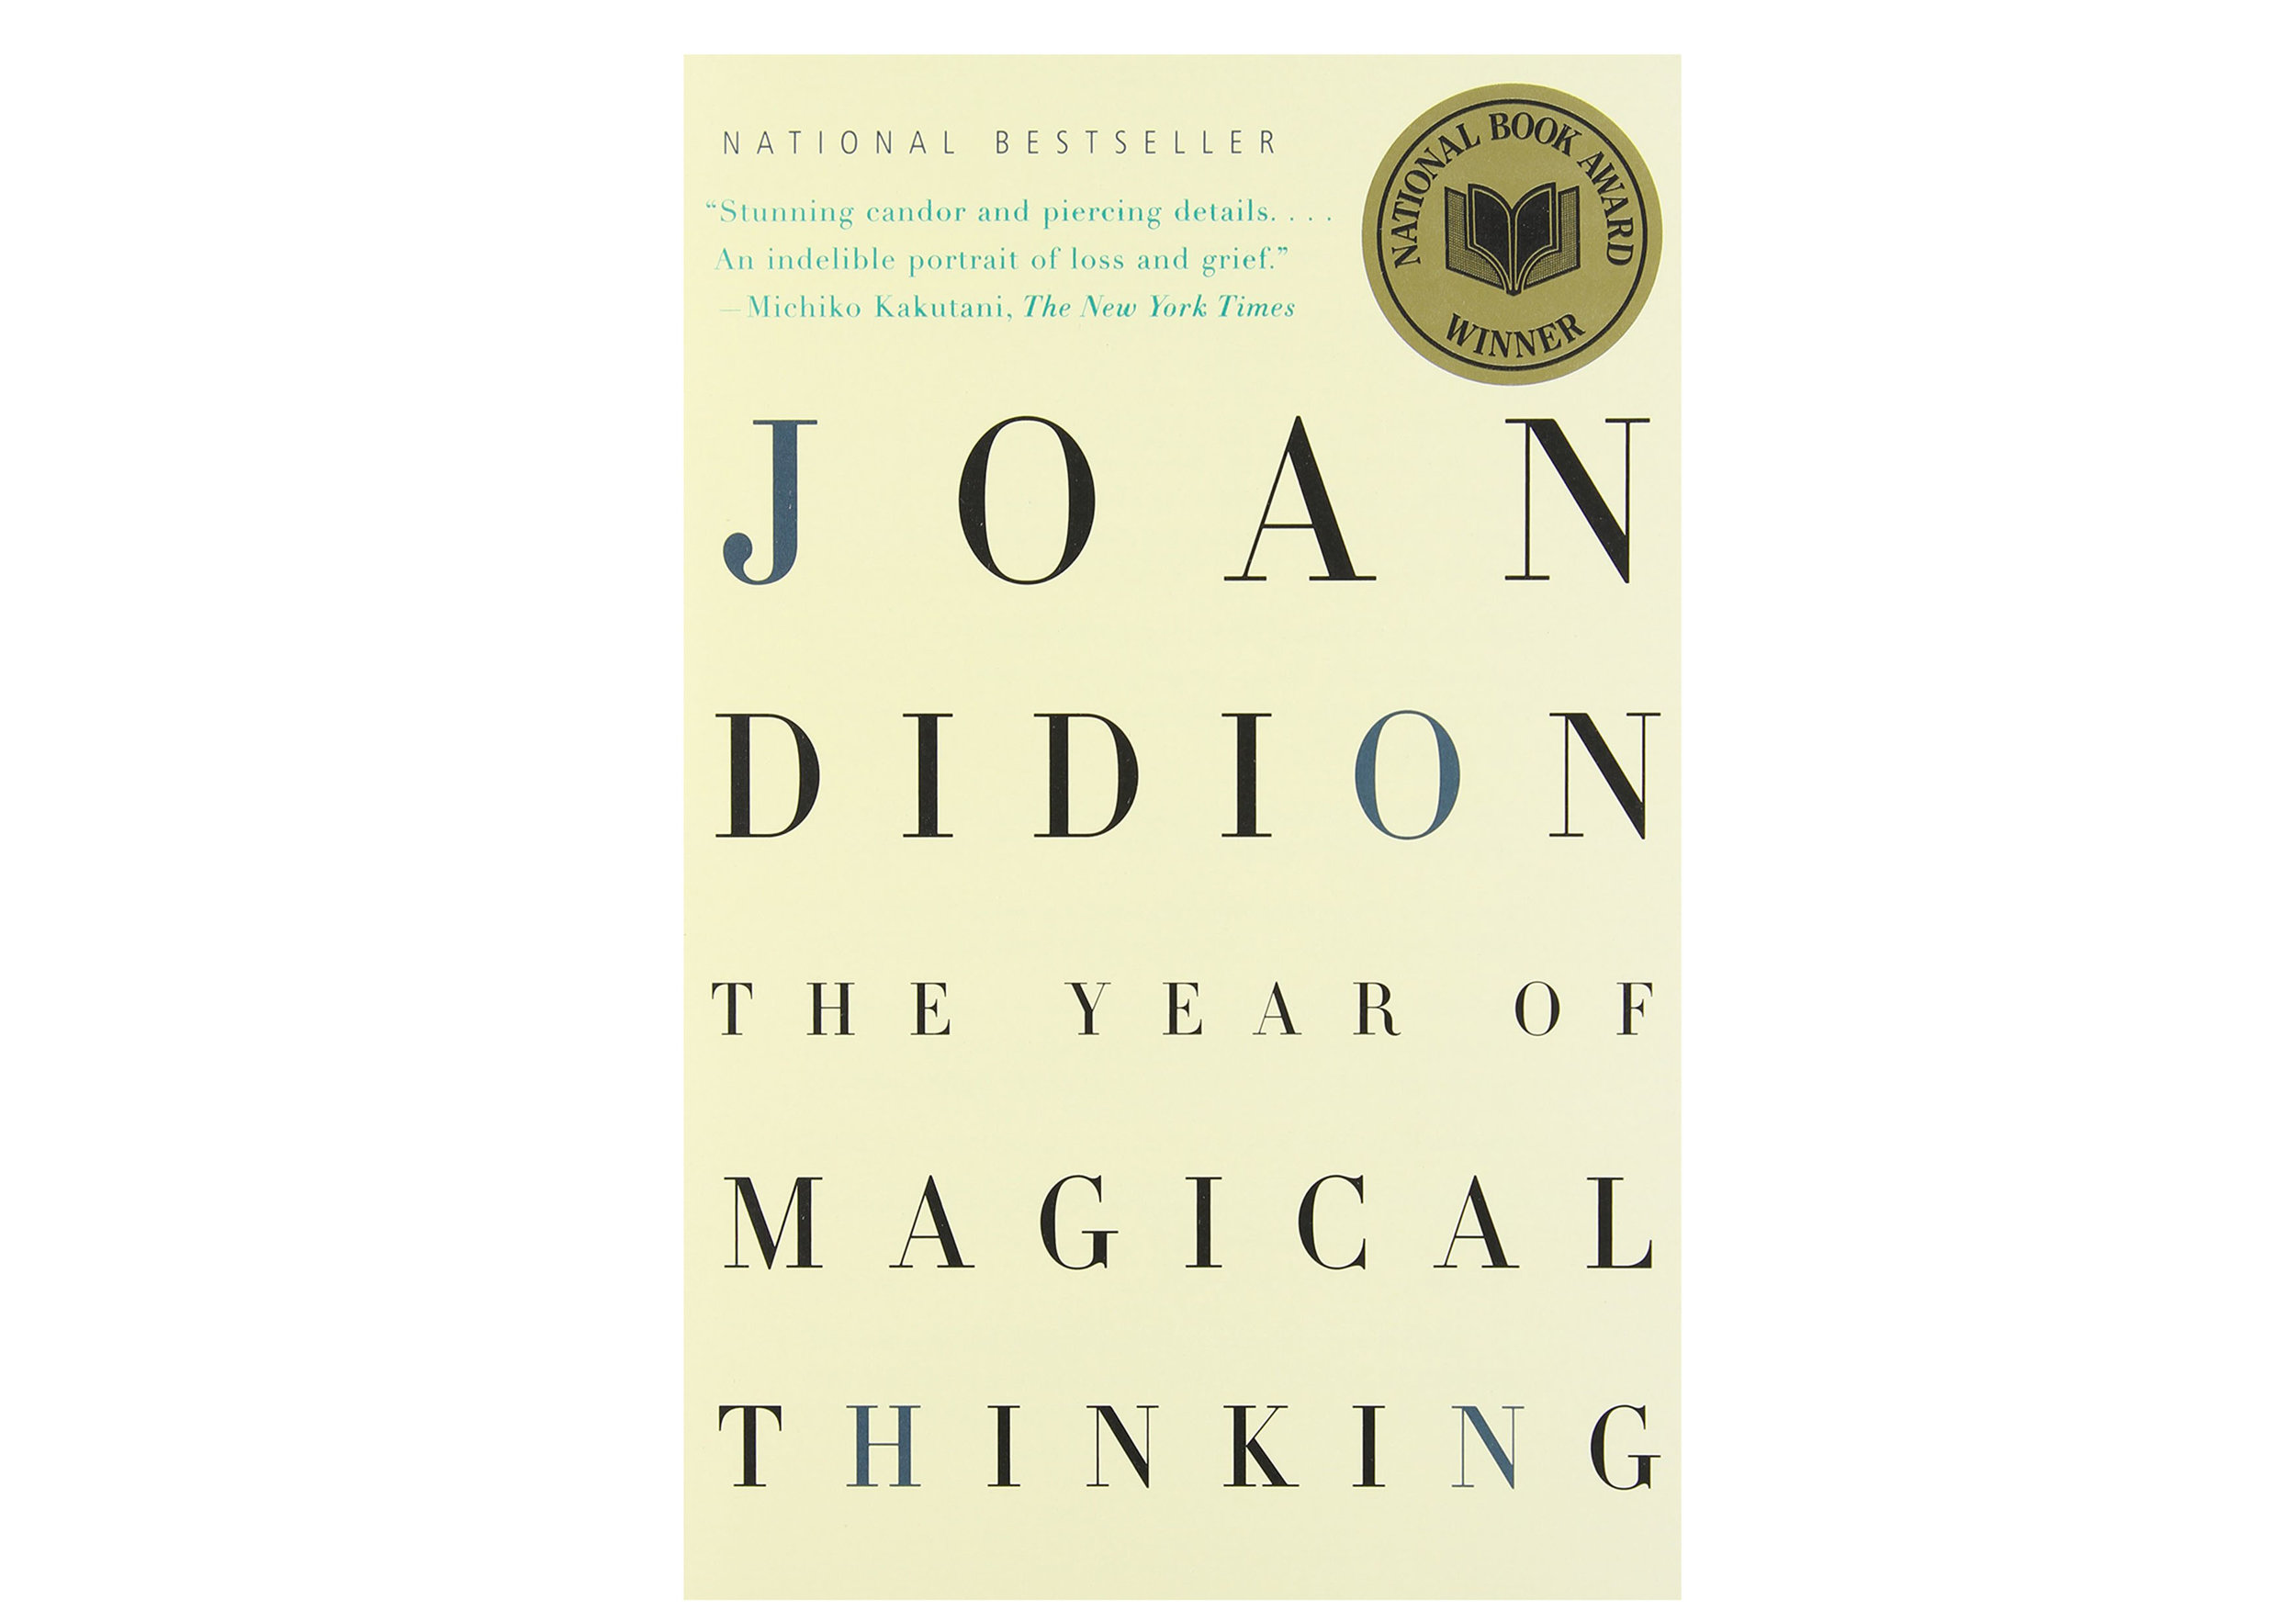 A year of magical thinking  by Joan Didion